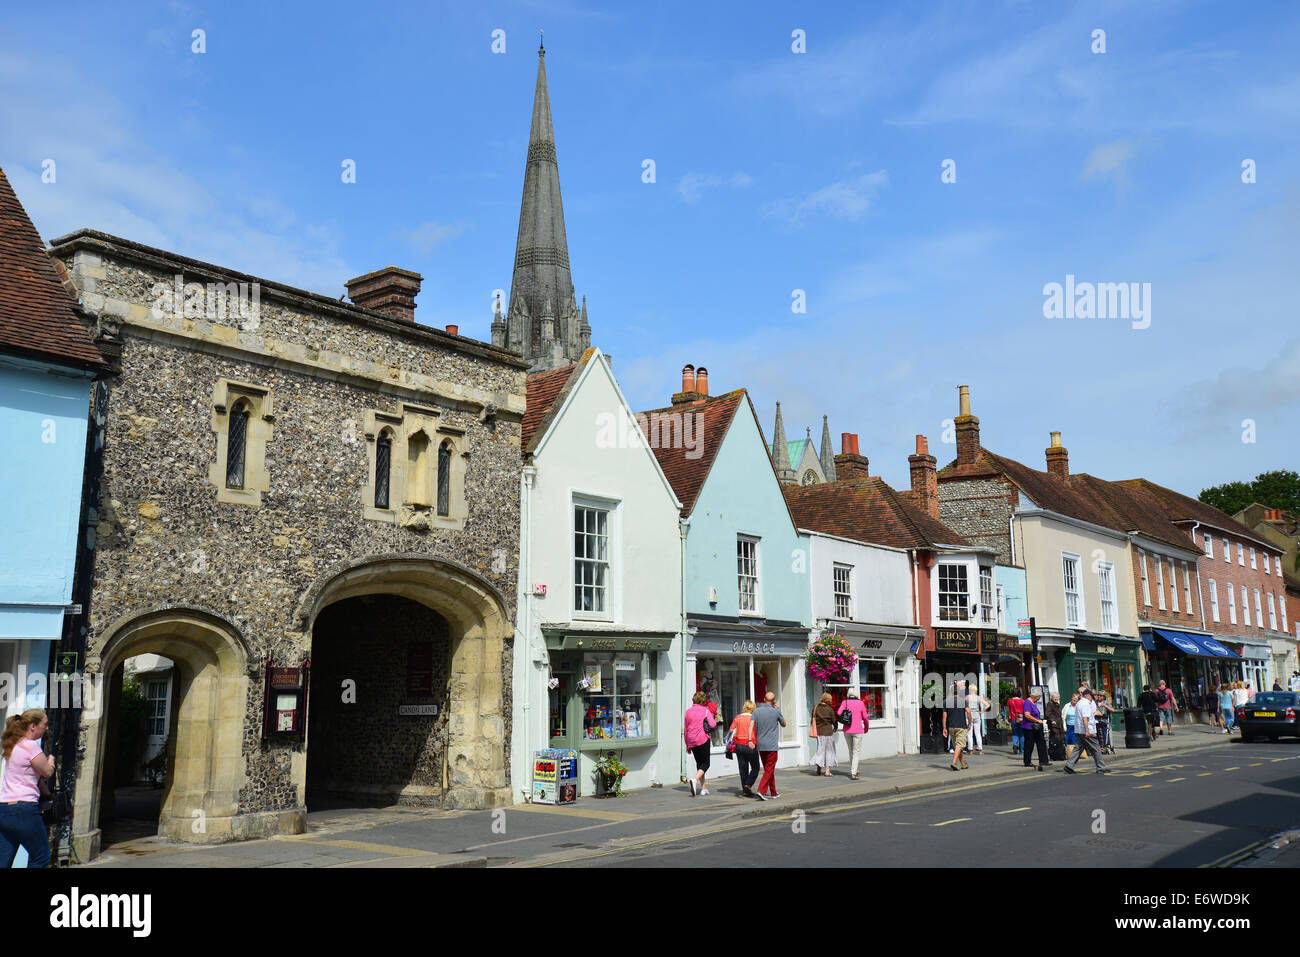 South Street, Chichester, West Sussex, England, United